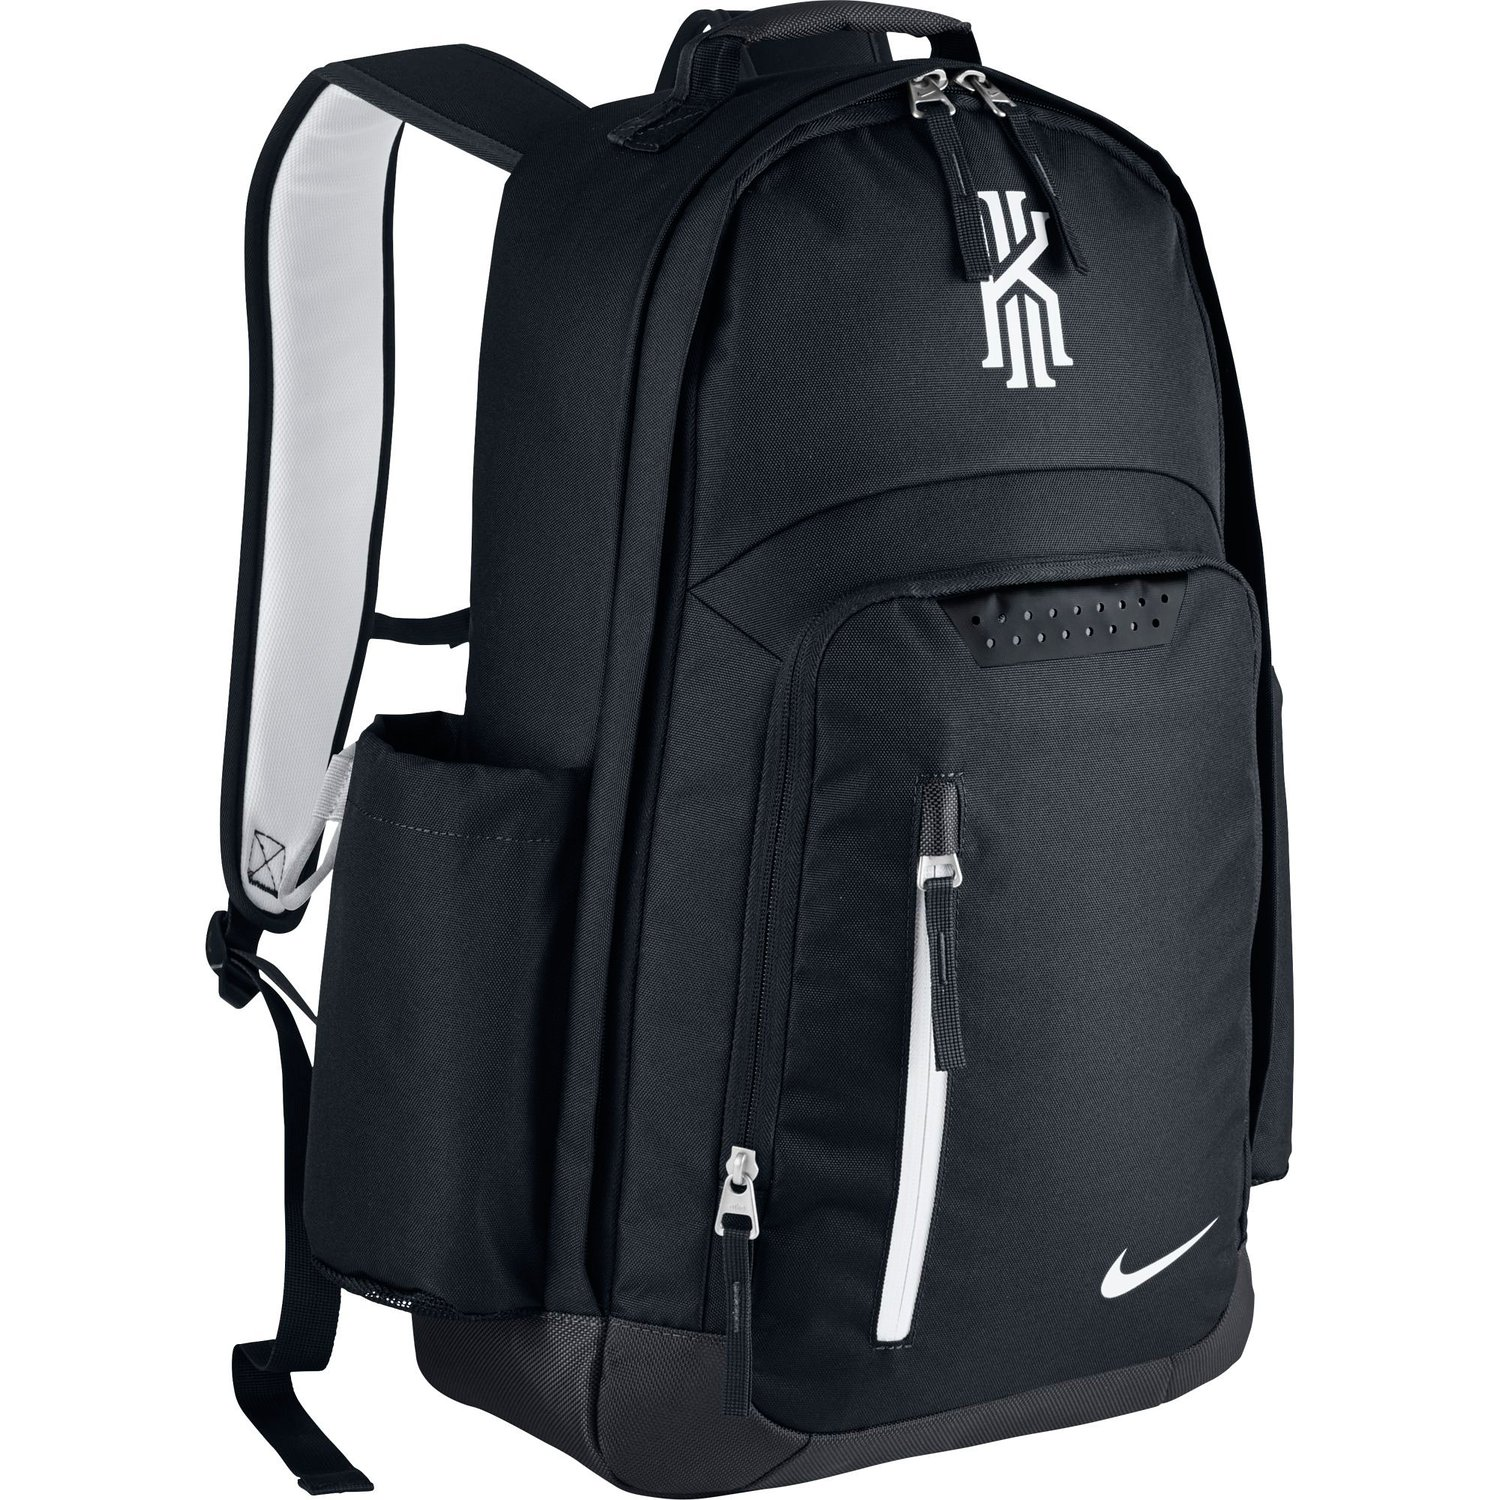 7ce3cd45aeb8 Nike Kyrie Irving Backpack Black And Gold- Fenix Toulouse Handball